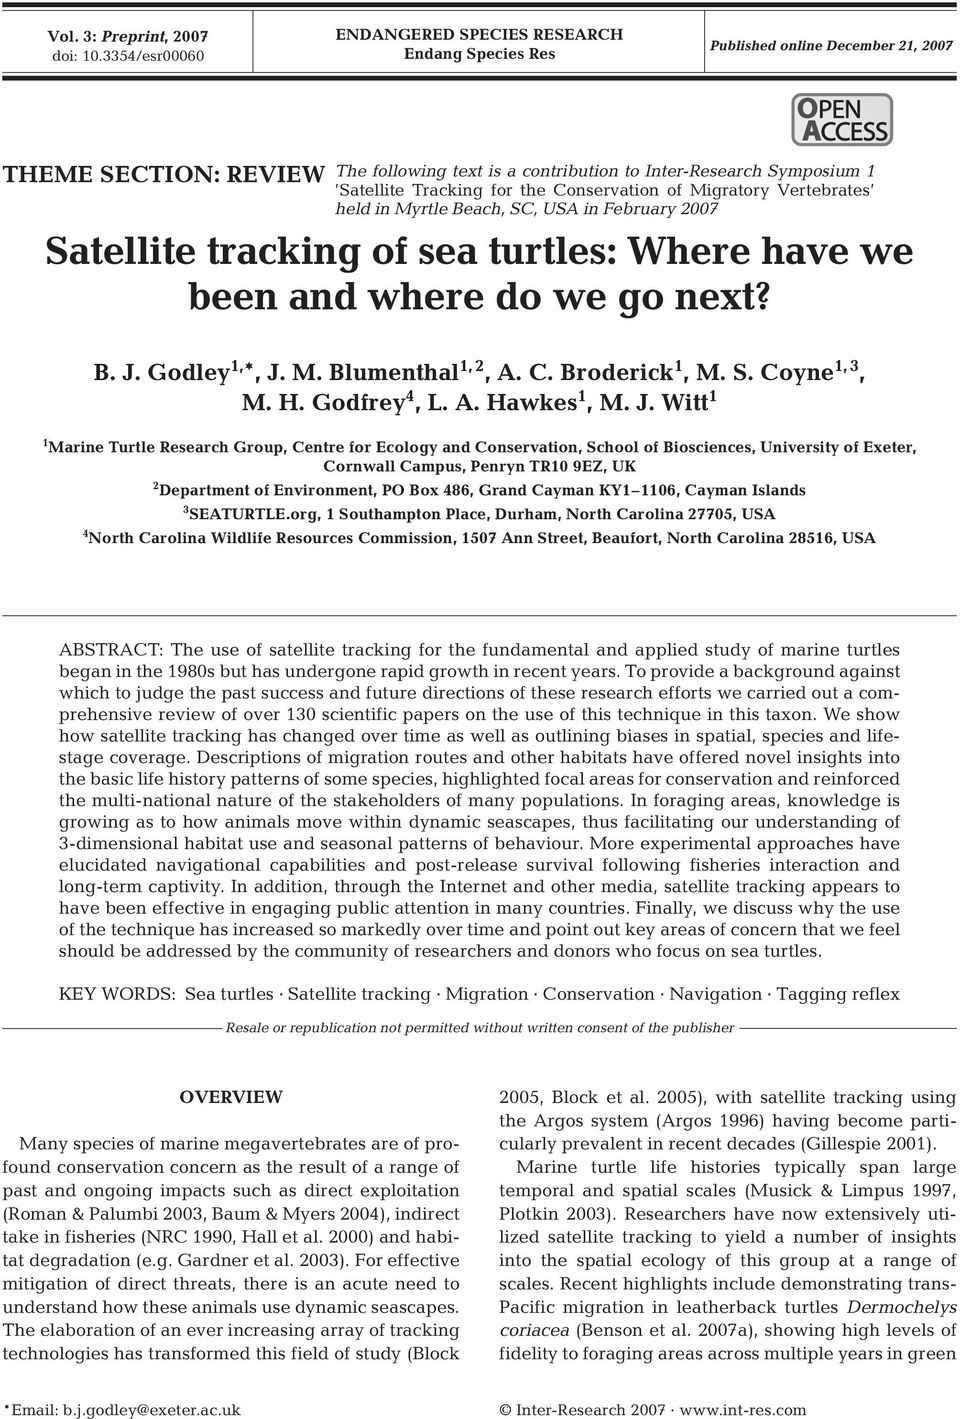 Satellite Tracking for the Conservation of Migratory Vertebrates held in Myrtle Beach, SC, USA in February 2007 Satellite tracking of sea turtles: Where have we been and where do we go next? B. J.